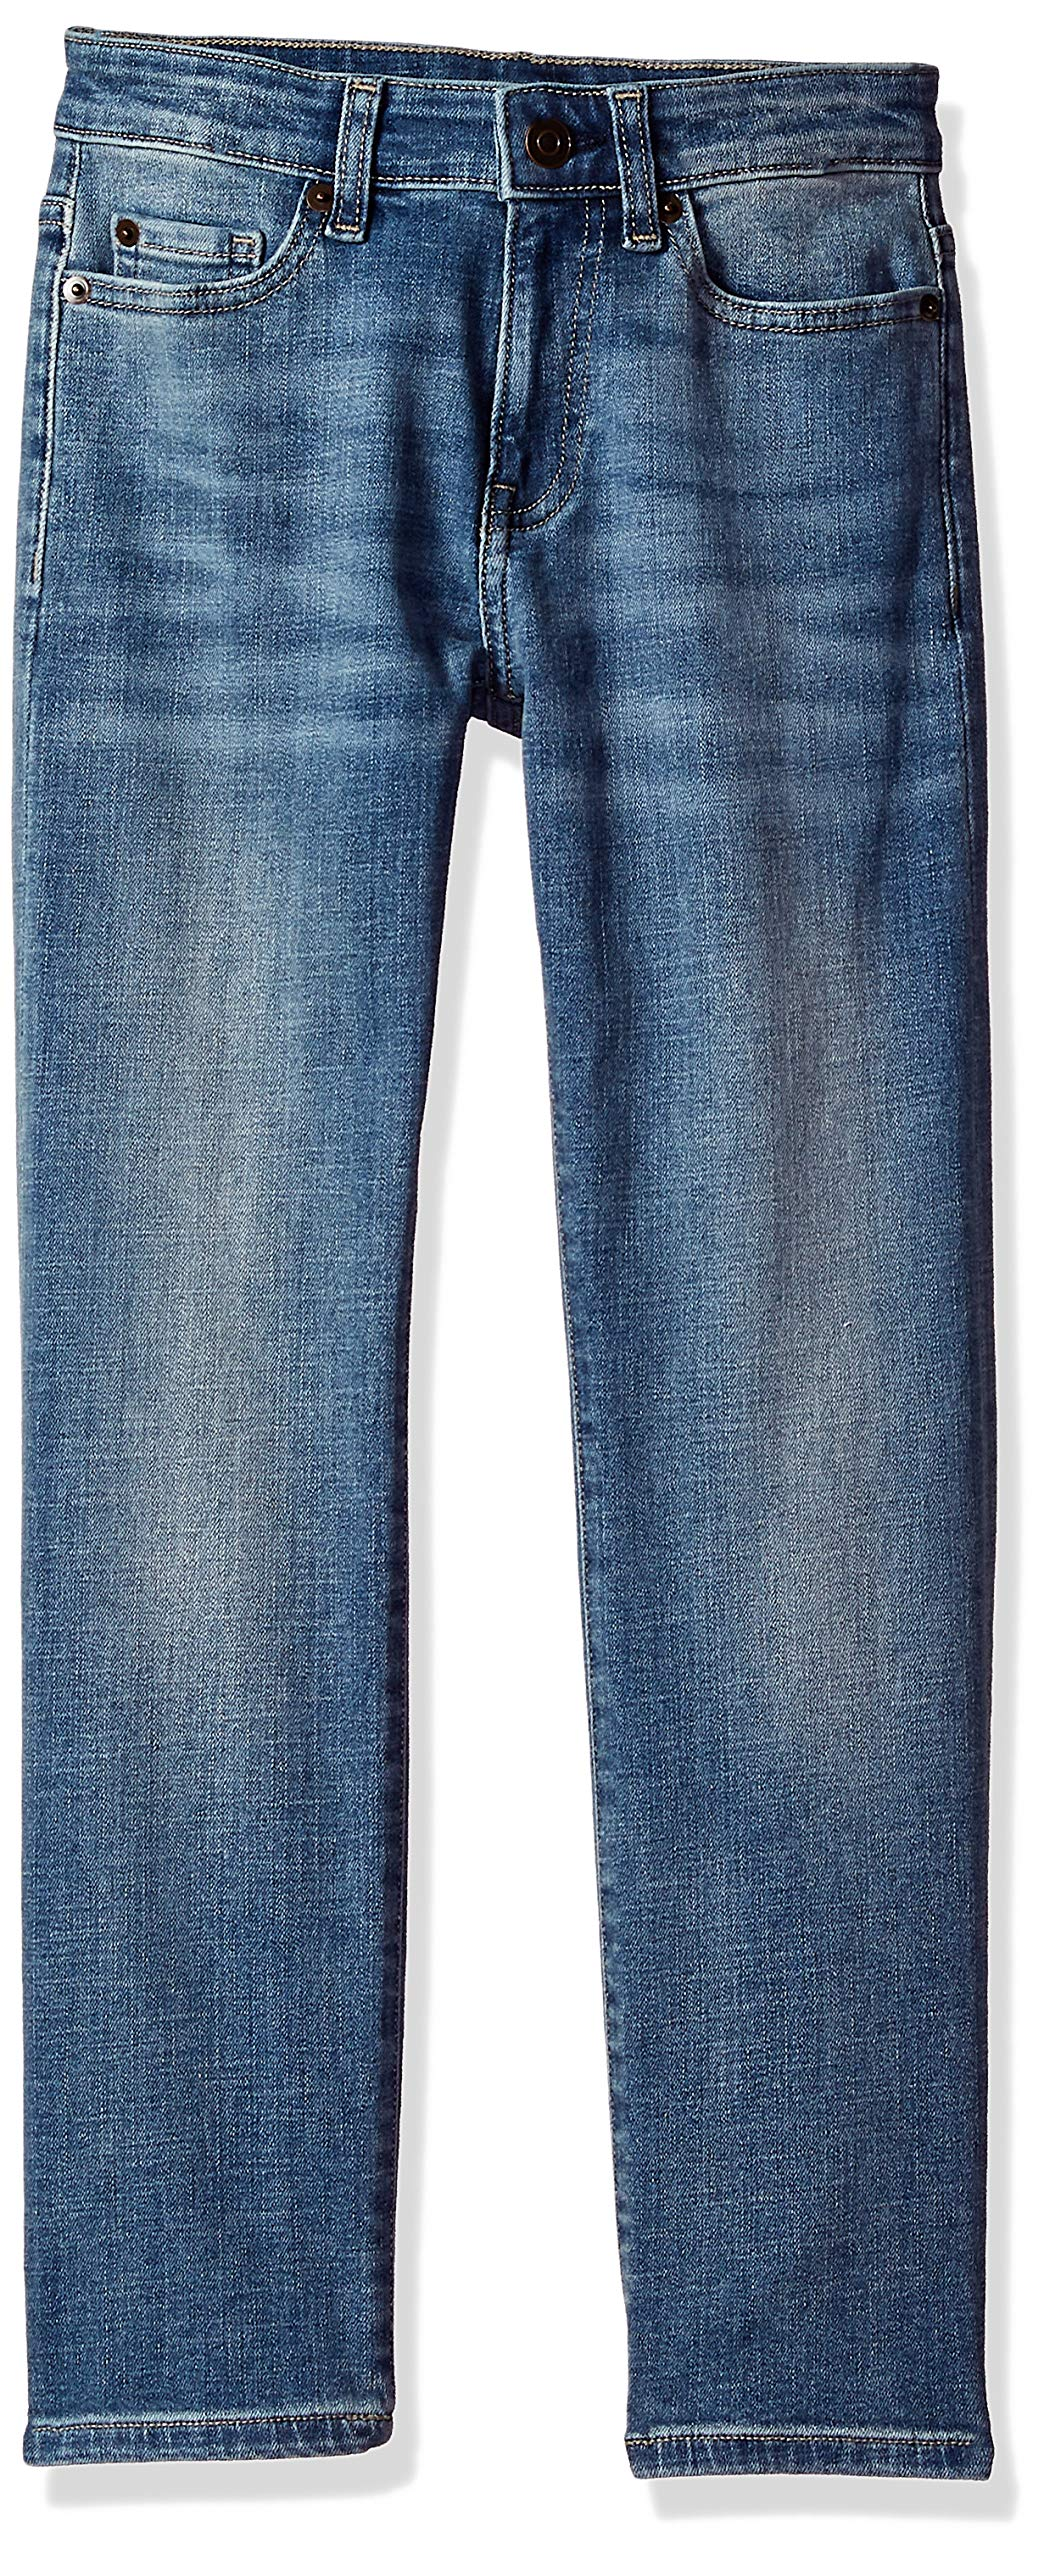 Amazon Essentials Big Boys' Straight-Fit Jeans, Doppler/Light Wash,8 by Amazon Essentials